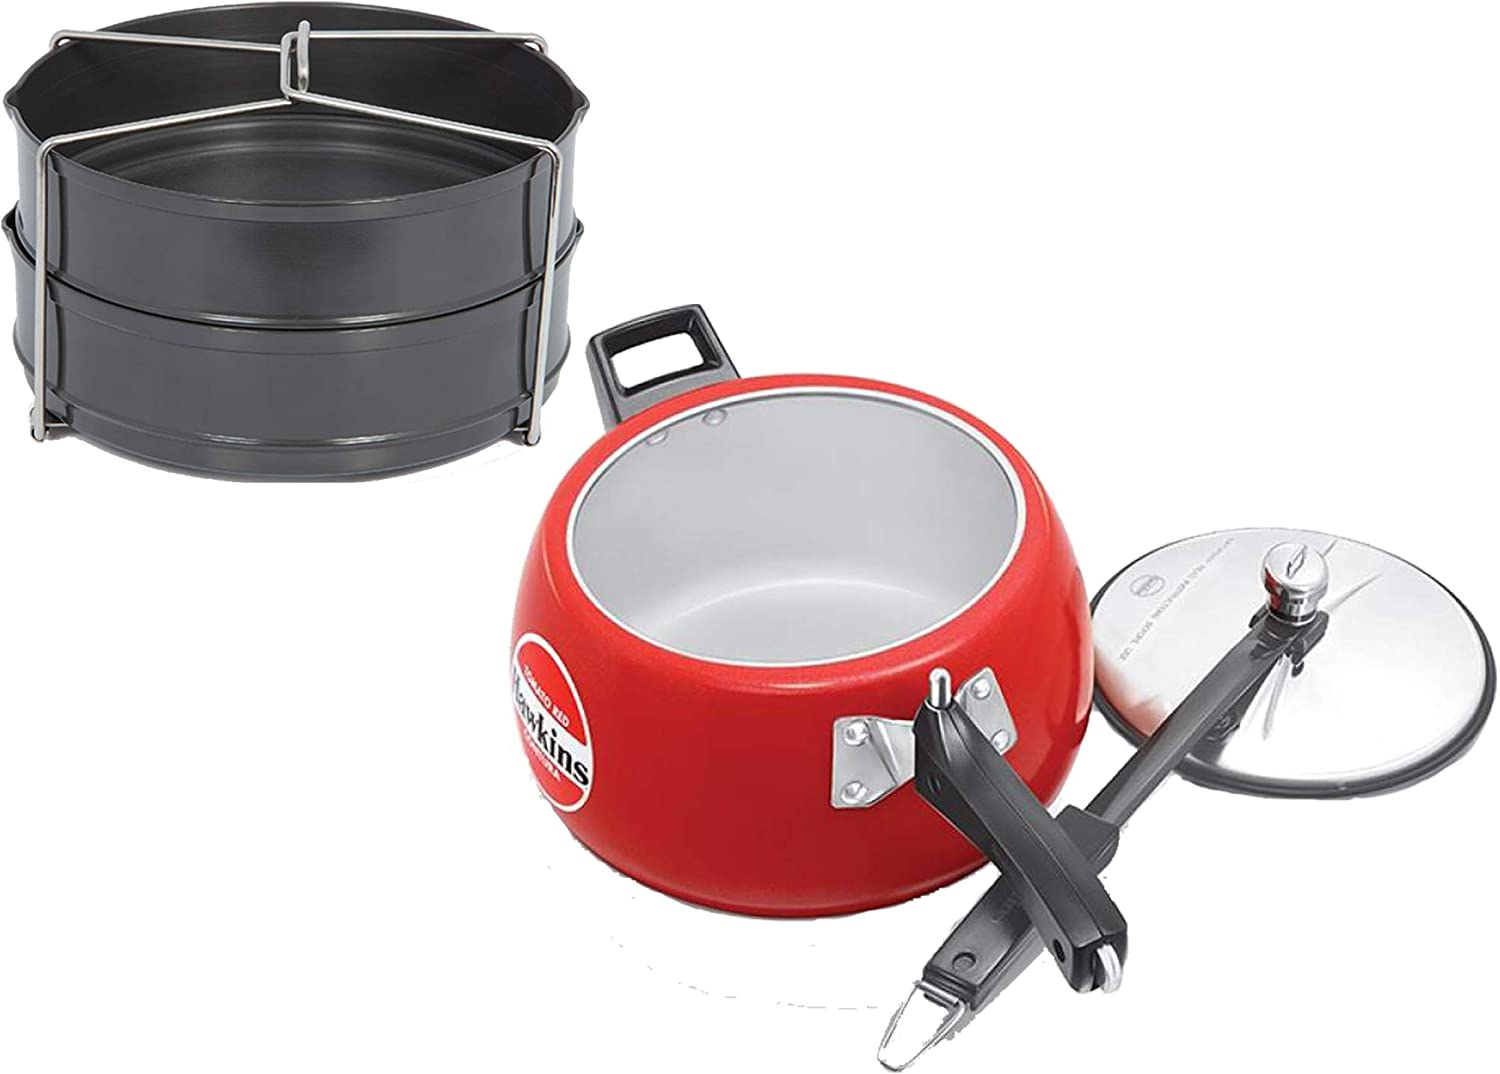 Hawkins Contura Ceramic Coated 5 LTR Tomato Red Pressure Cooker with Hard Anodised 2 Pc Separater Cooker Dabba and Stand